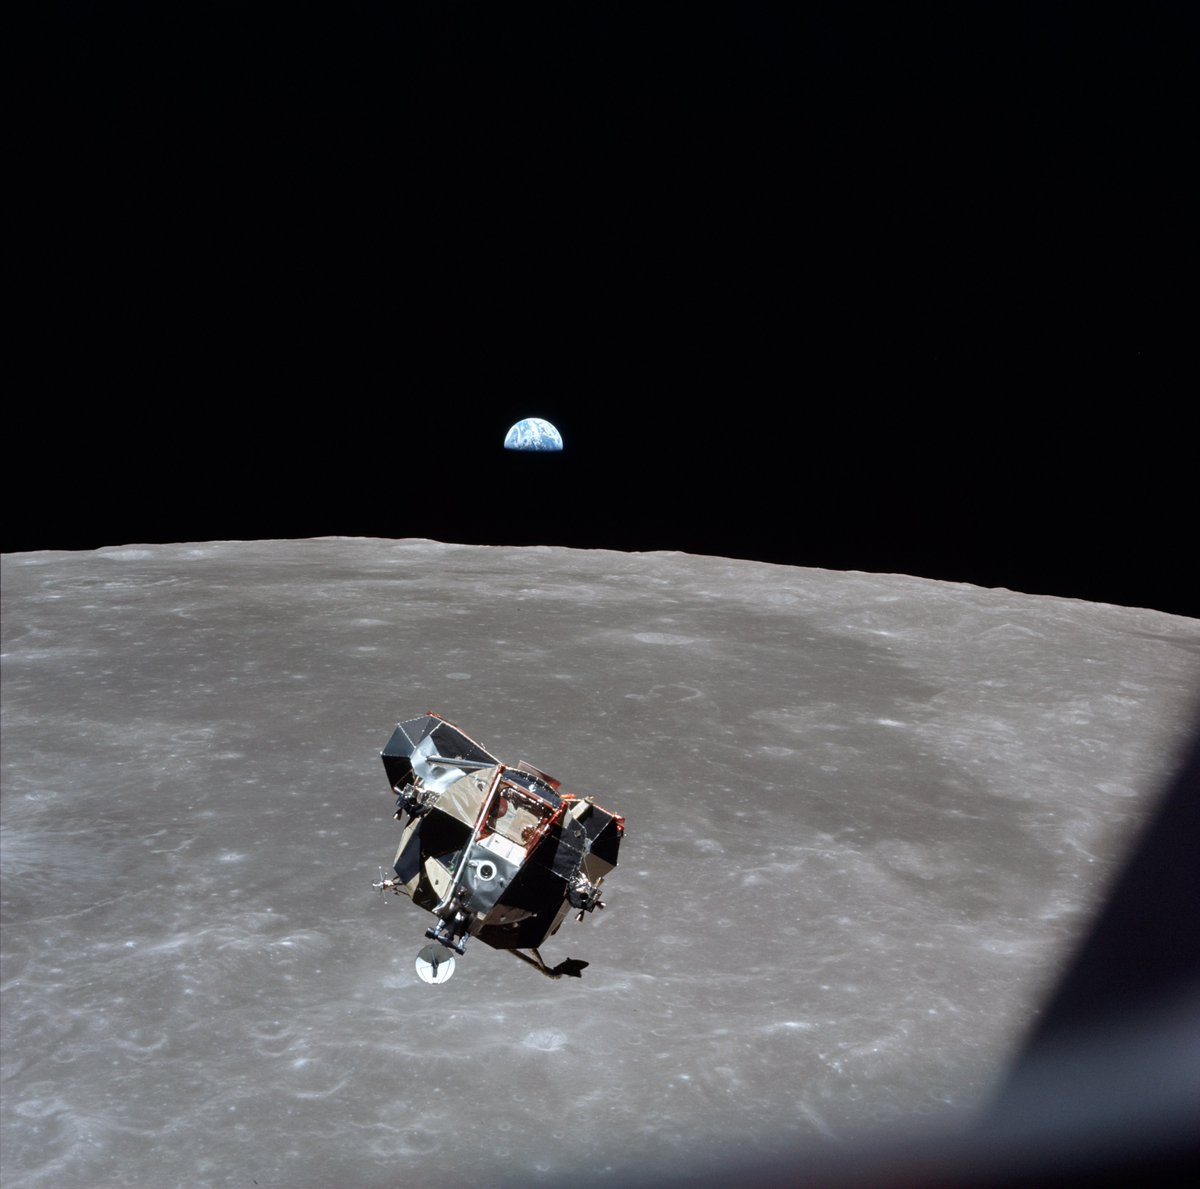 New Evidence Suggests Apollo 11's Lunar Ascent Module Could Still Be Orbiting the Moon https://t.co/OFcf1KNf2e